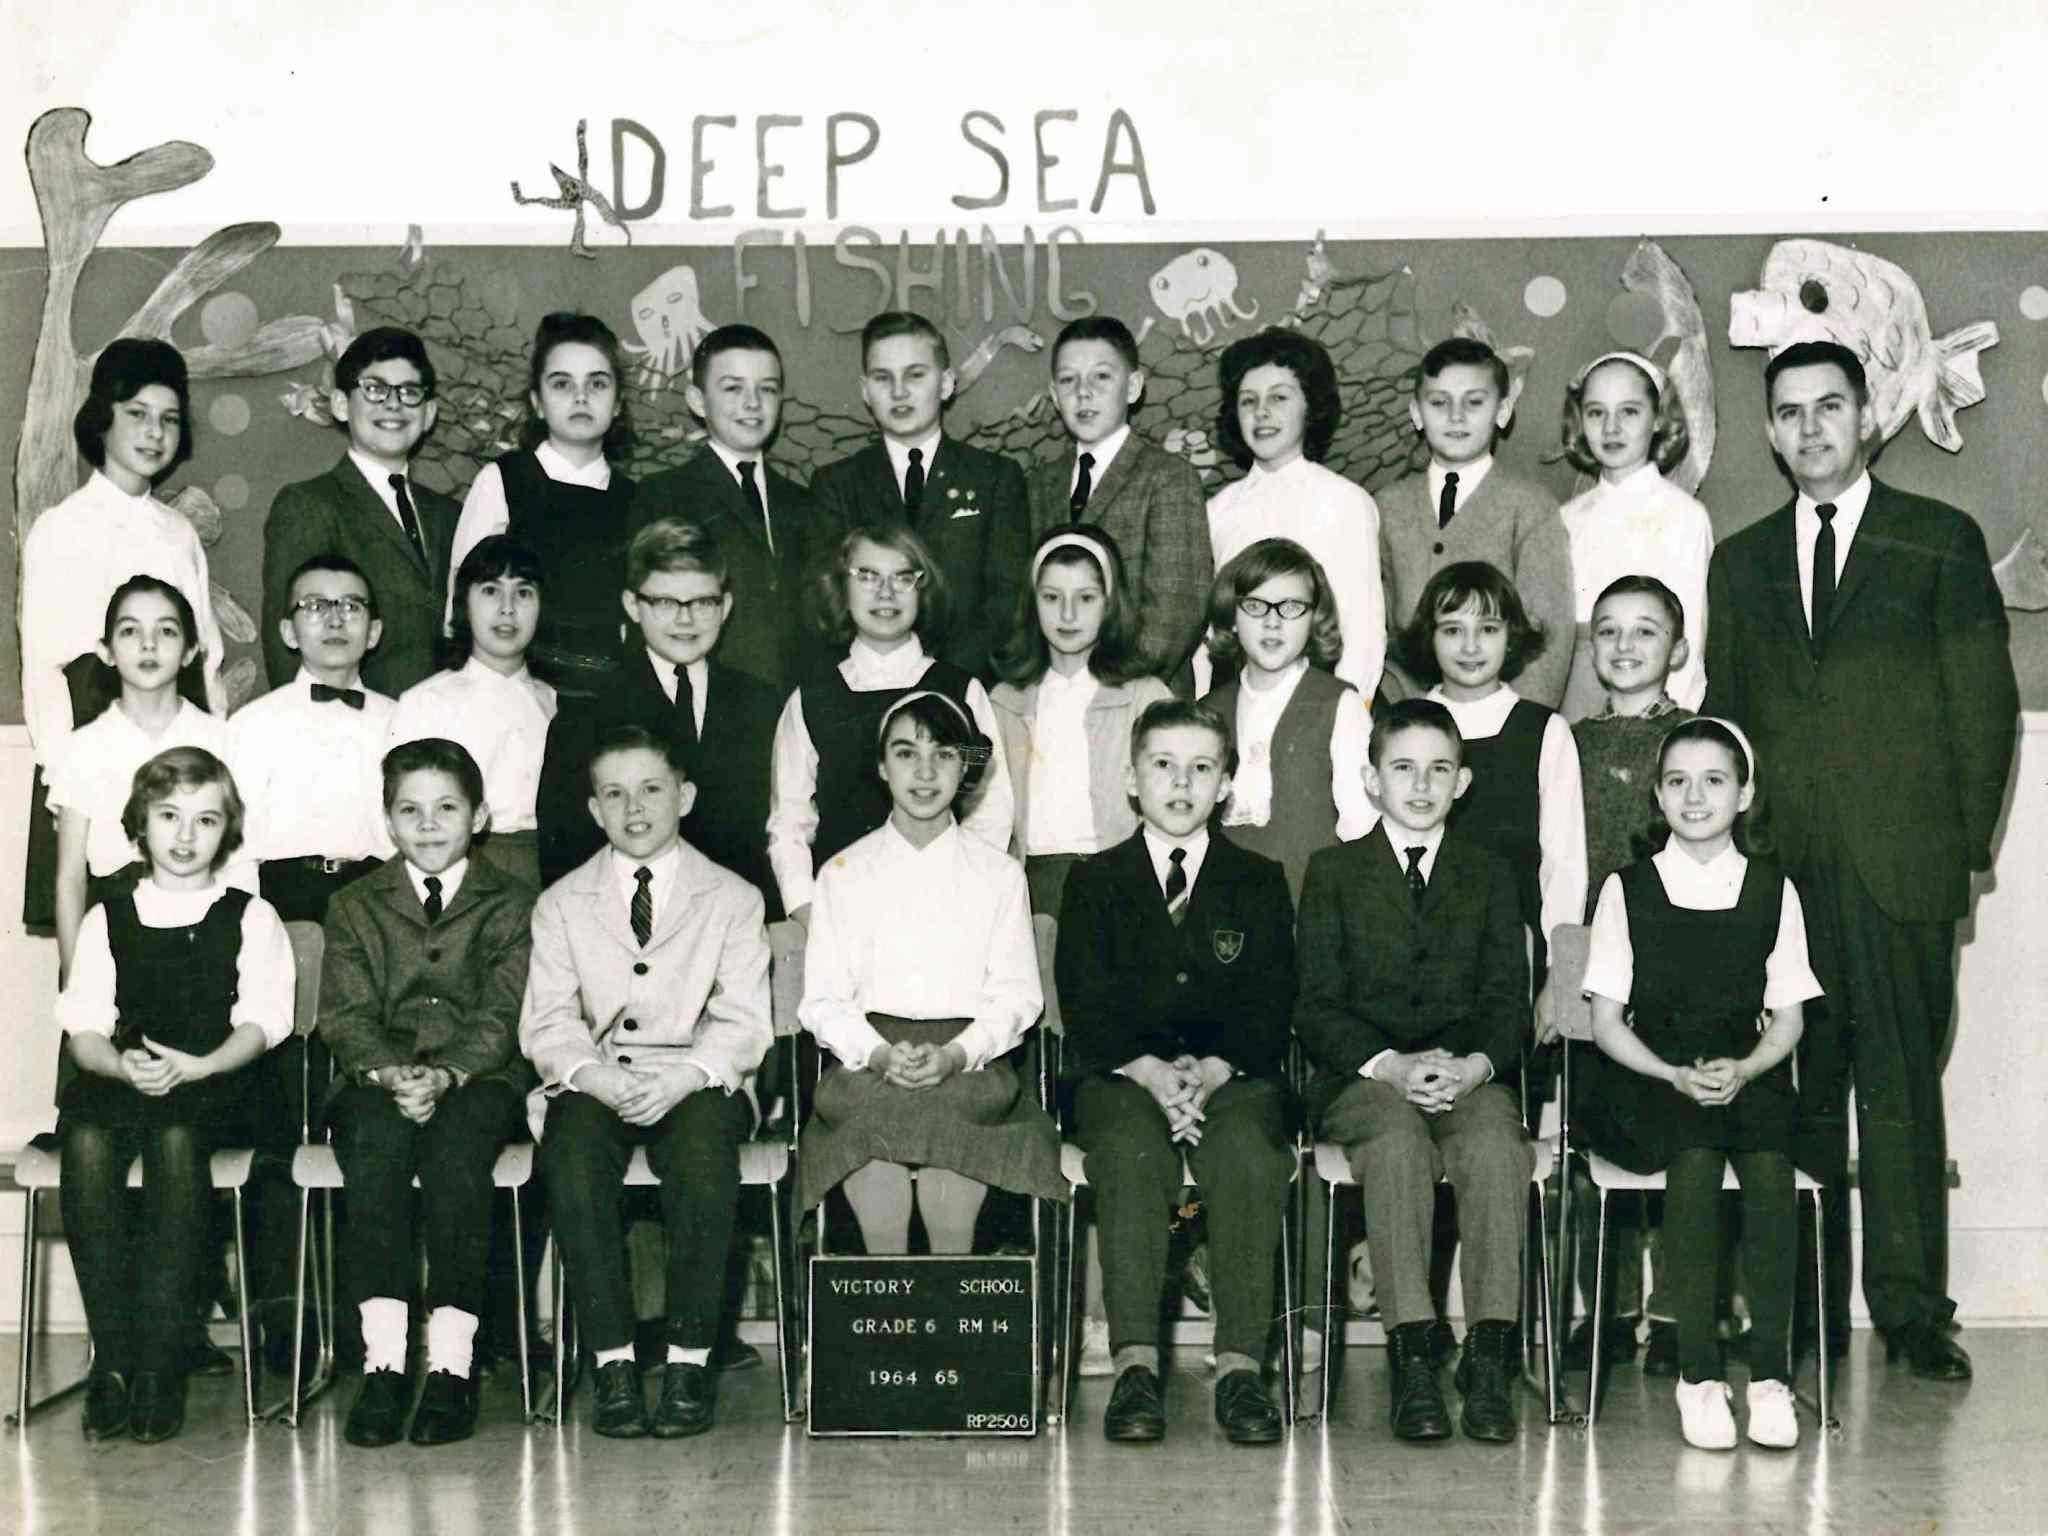 Lisa Watt (second row, second from right) in Grade 6 at Victory School.